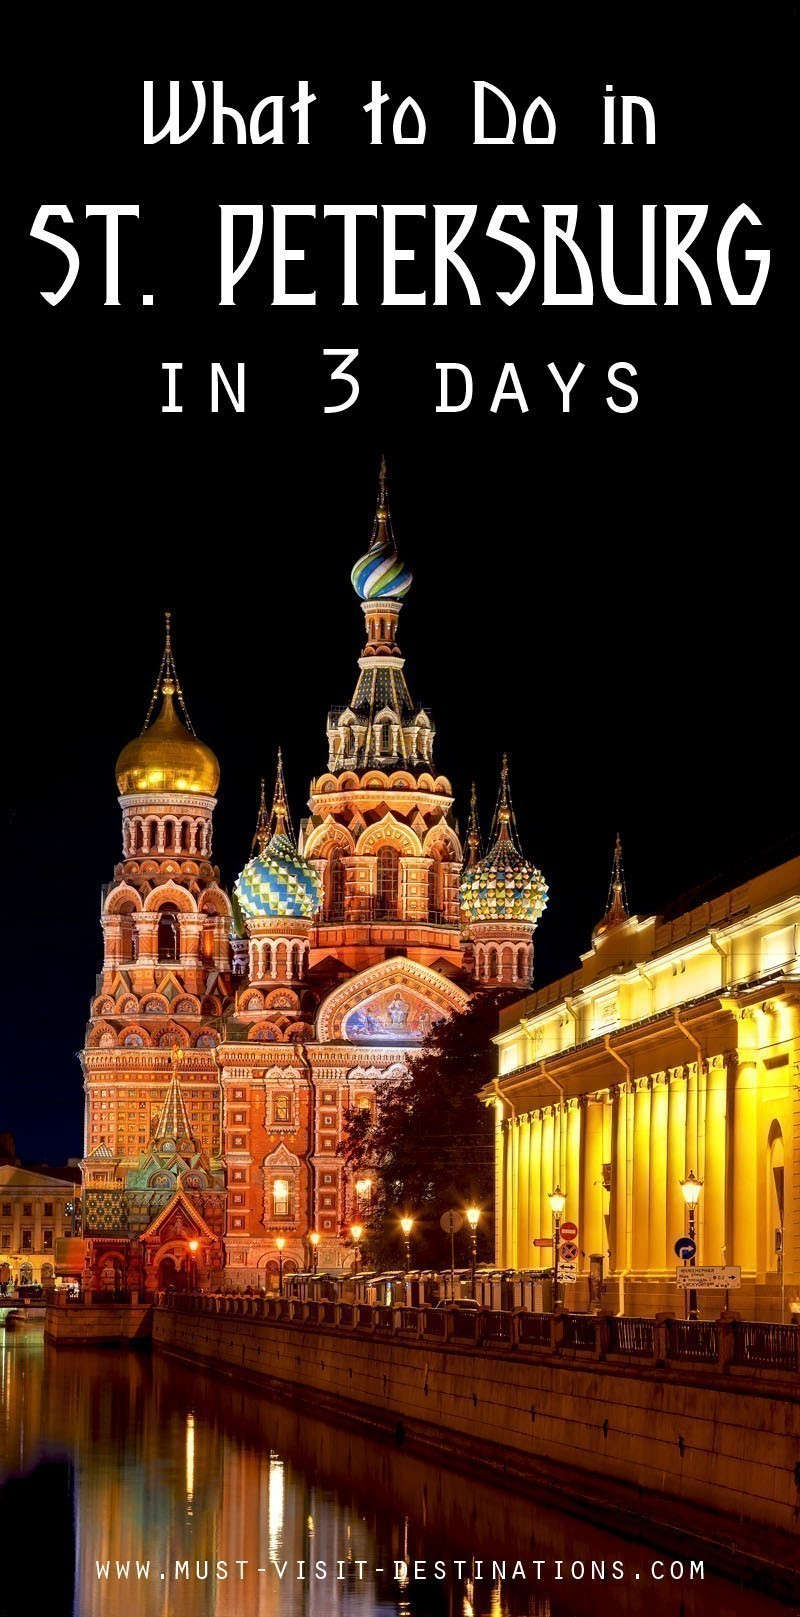 Planning a trip of 3 days in St. Petersburg? Then you are heading towards the most awesome trip of your life. Here are some things to do in St. Petersburg in 3 Days.